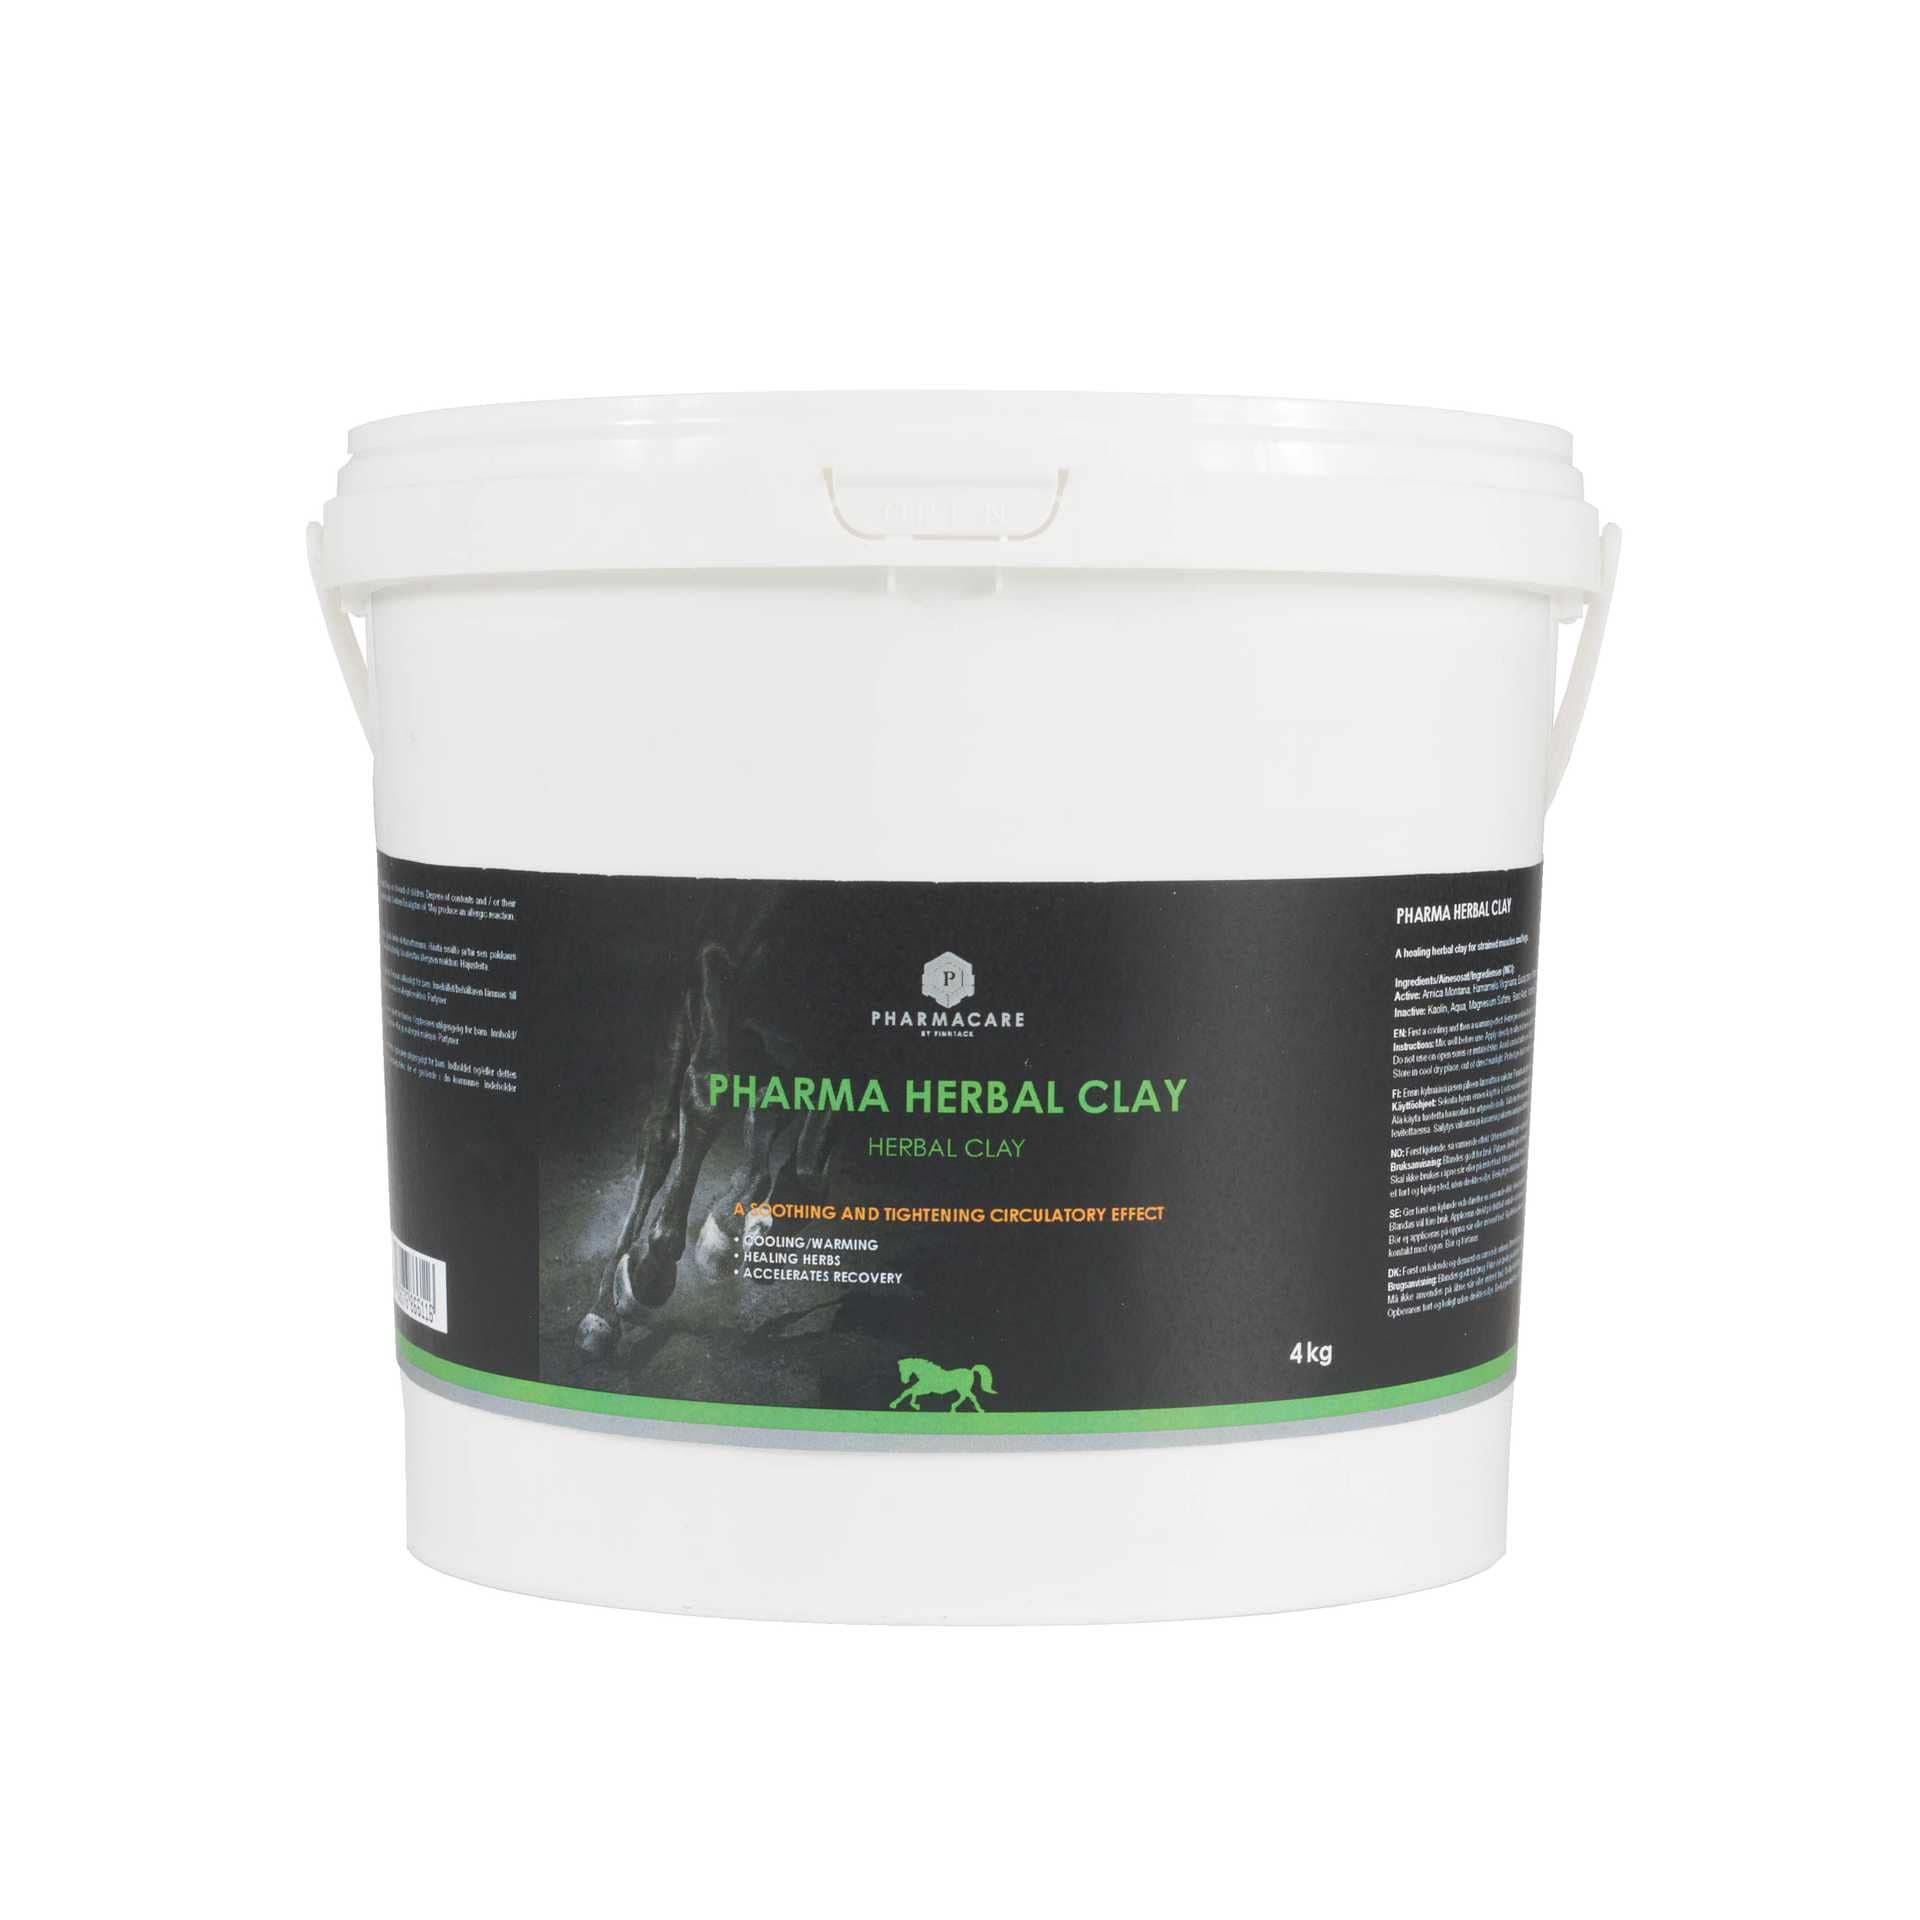 Pharma Herbal Clay, 4 kg